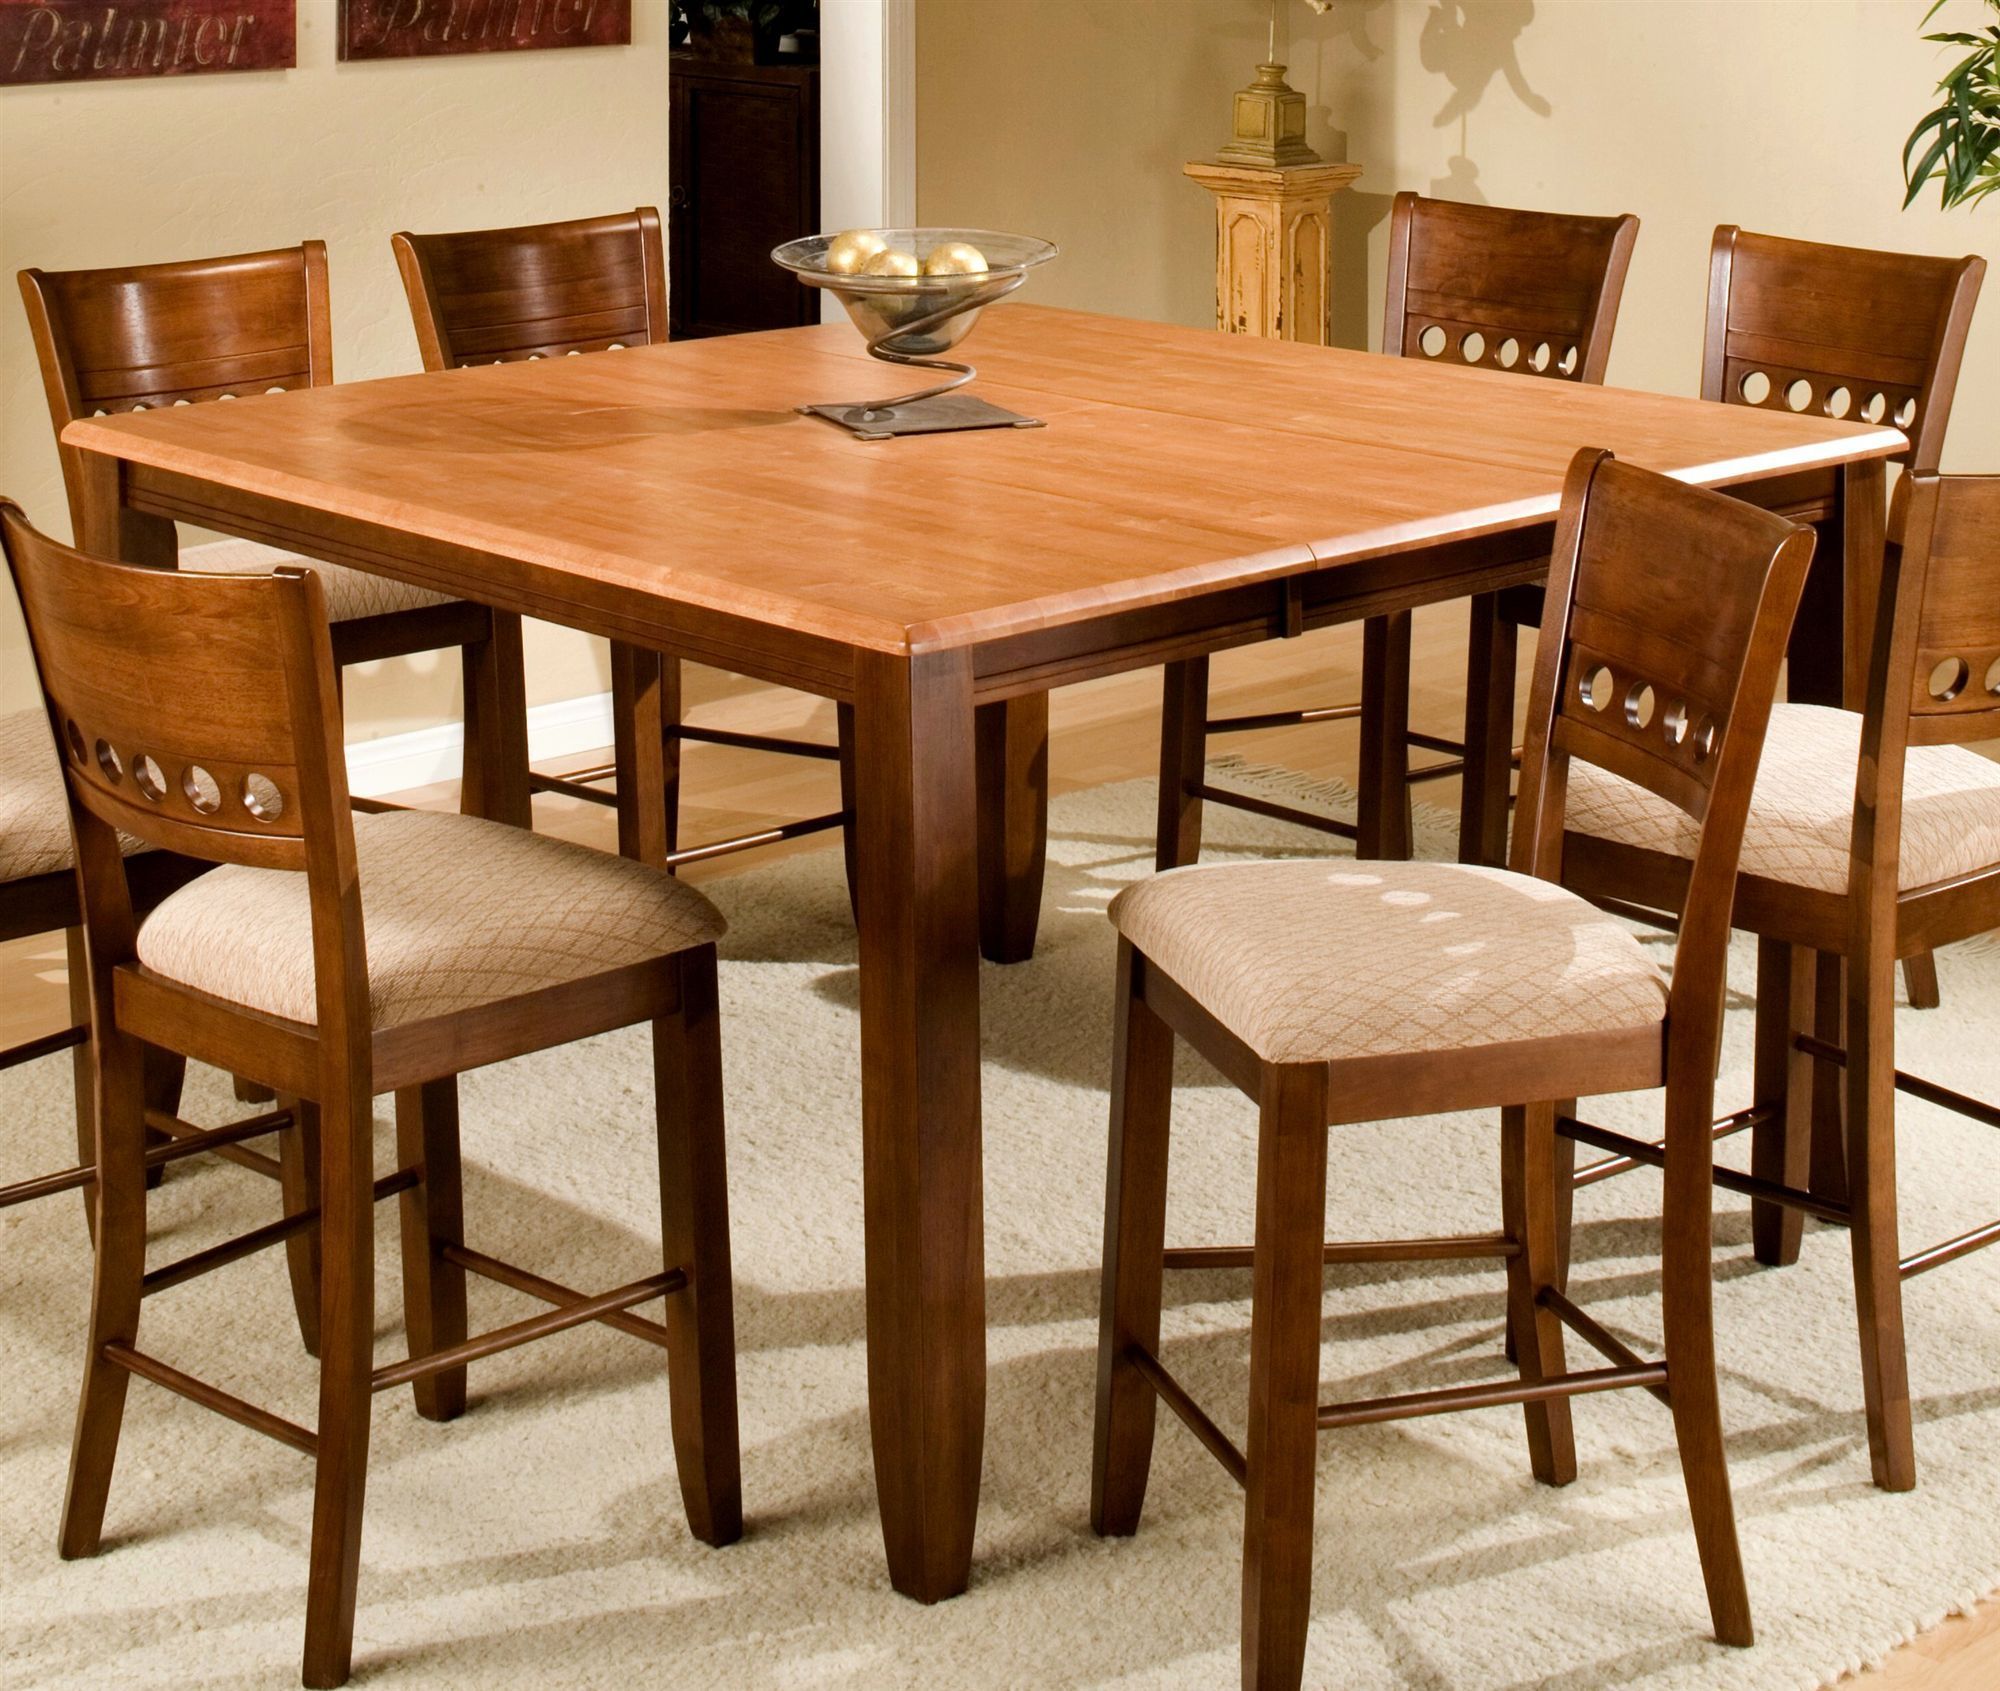 Square Dining Talbe For 8 With Leaf